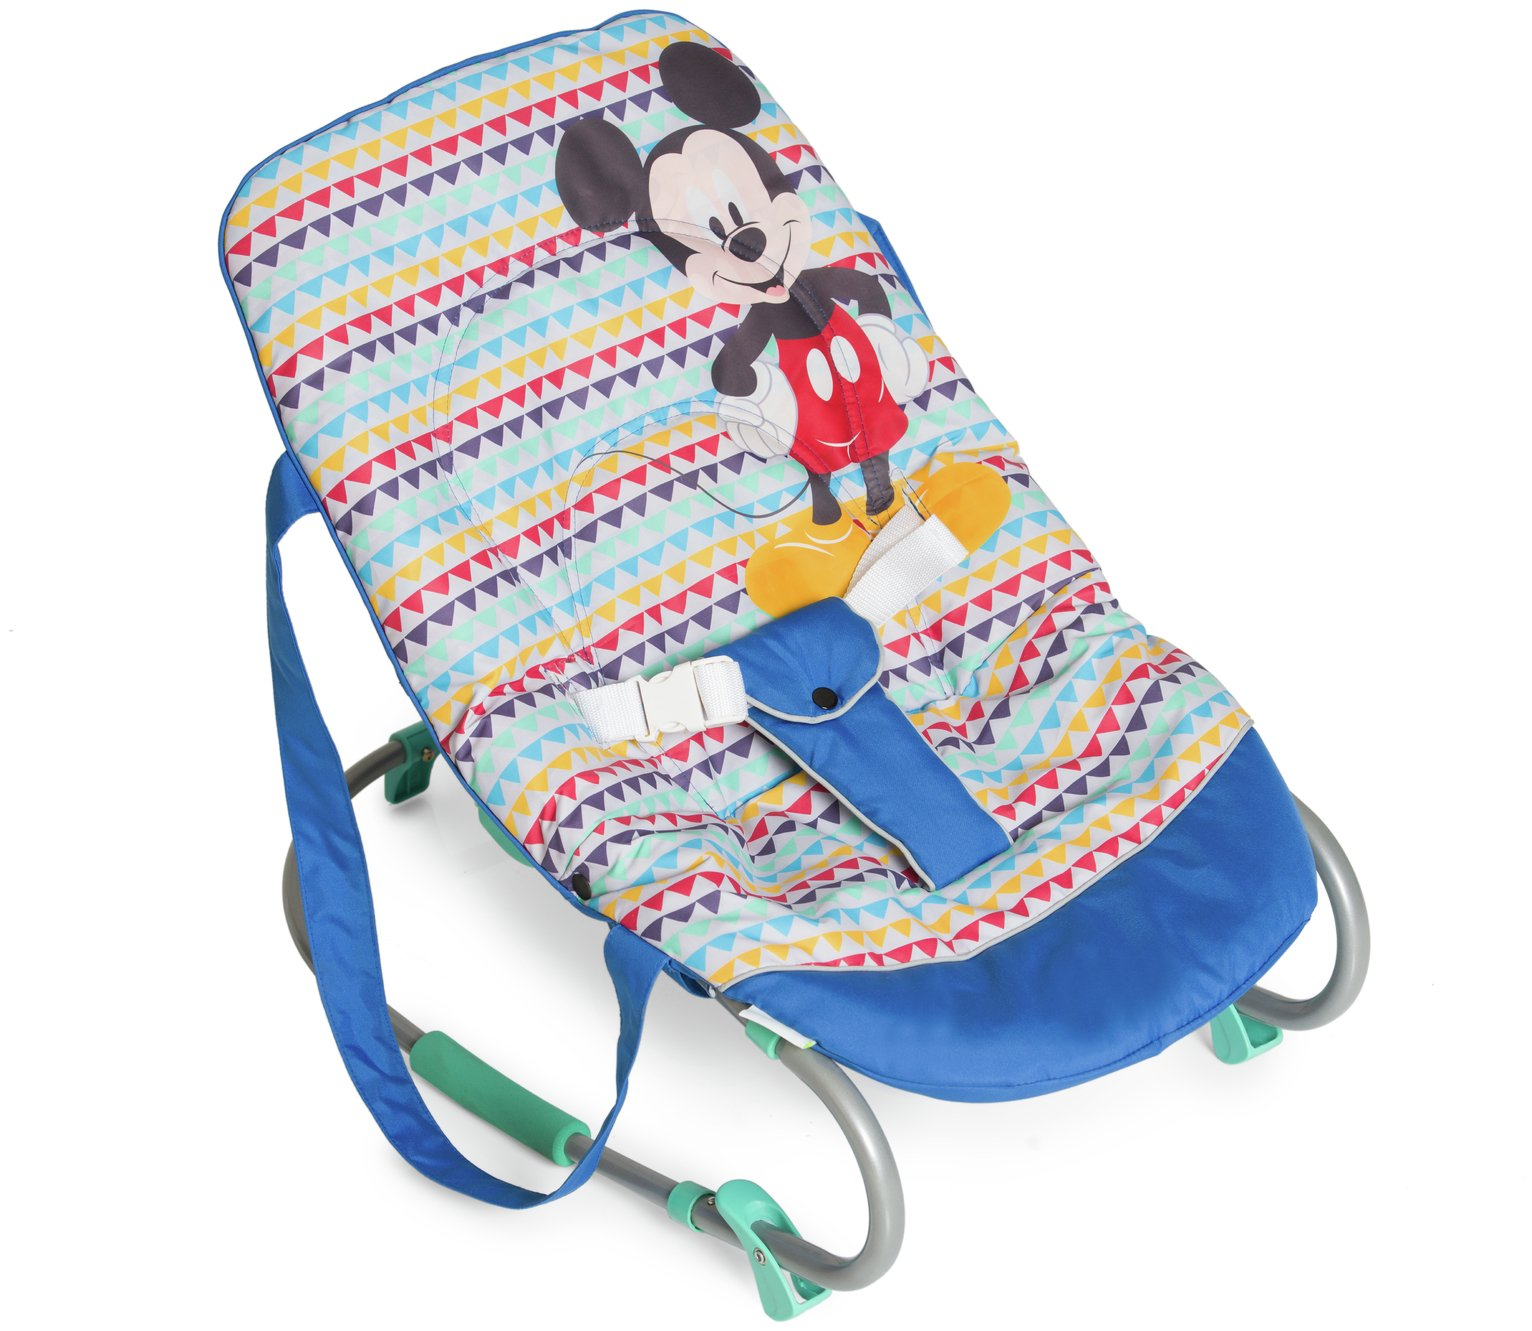 Disney Baby Mickey Mouse Baby Bouncer - Geo Blue Best Price, Cheapest Prices